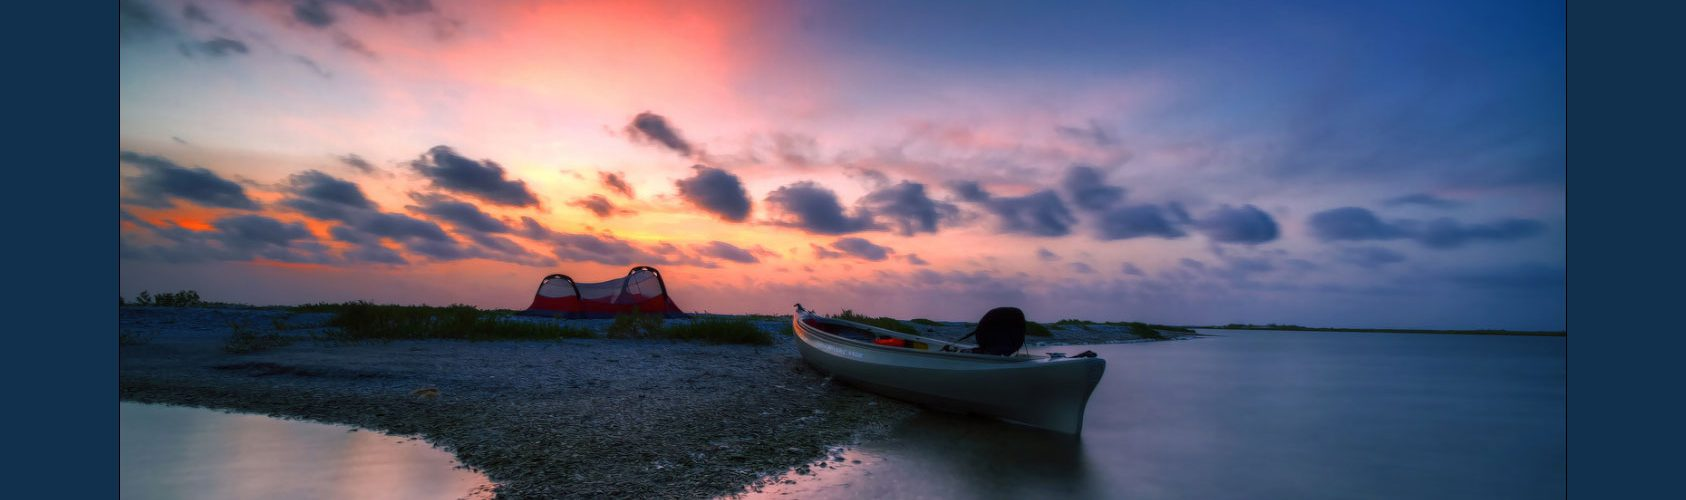 Aransas camping at sunrise by Eduardo Muriedas